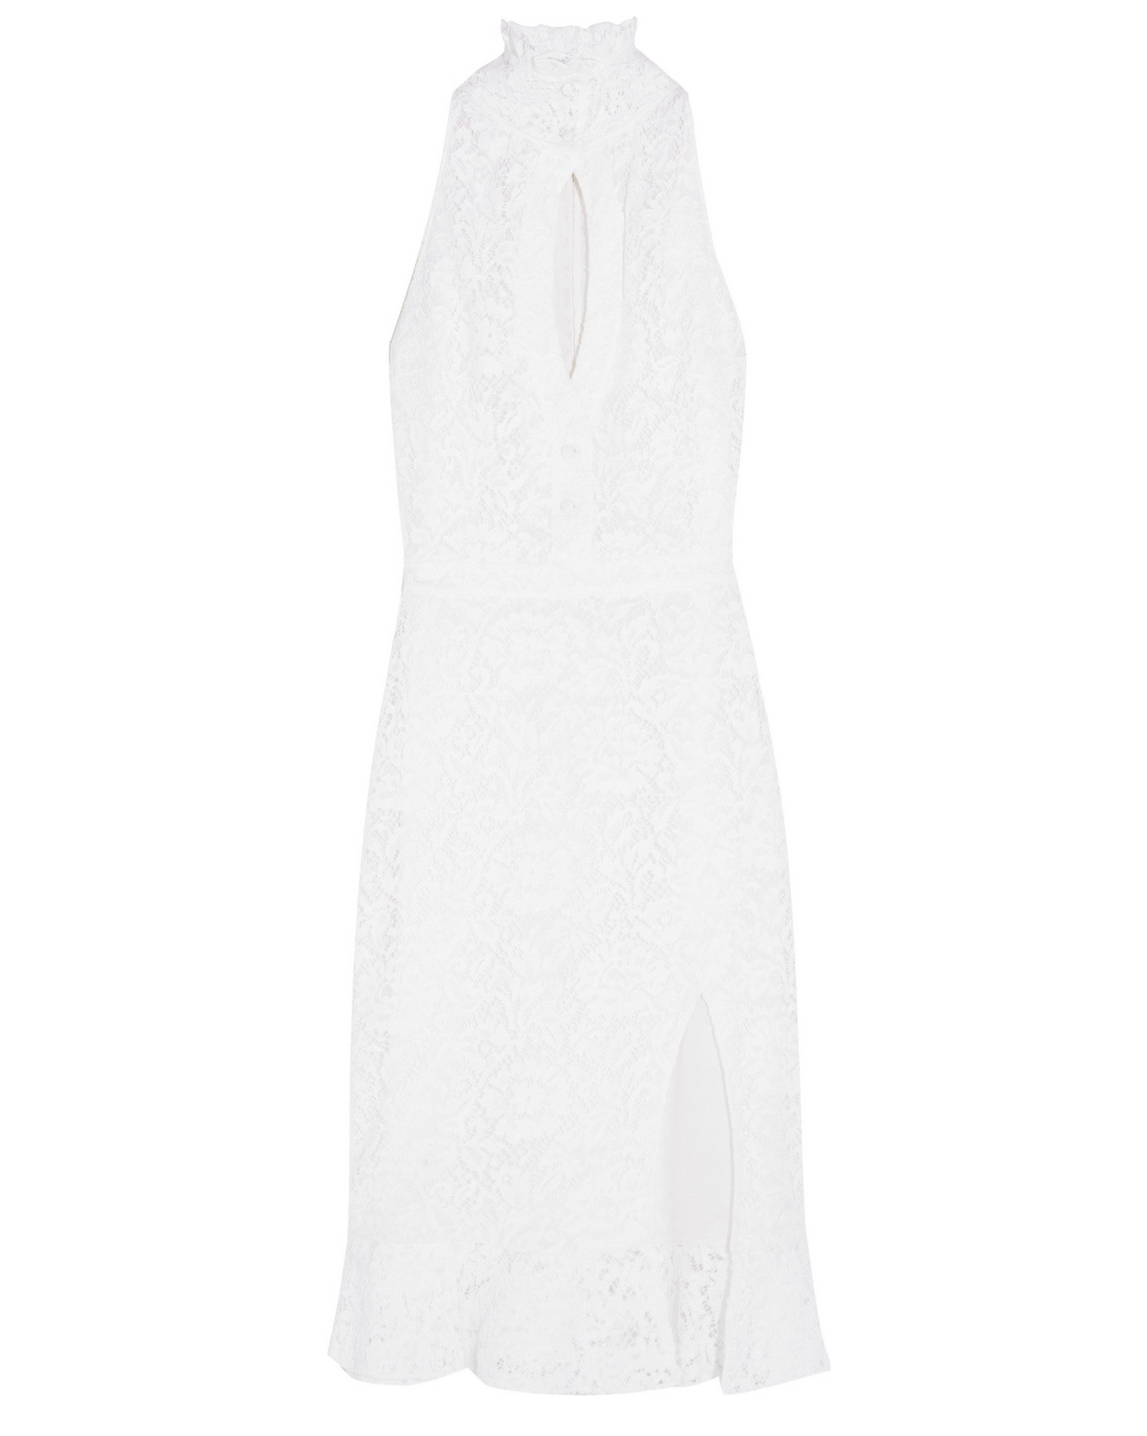 Joseph Altuzarra White Dress